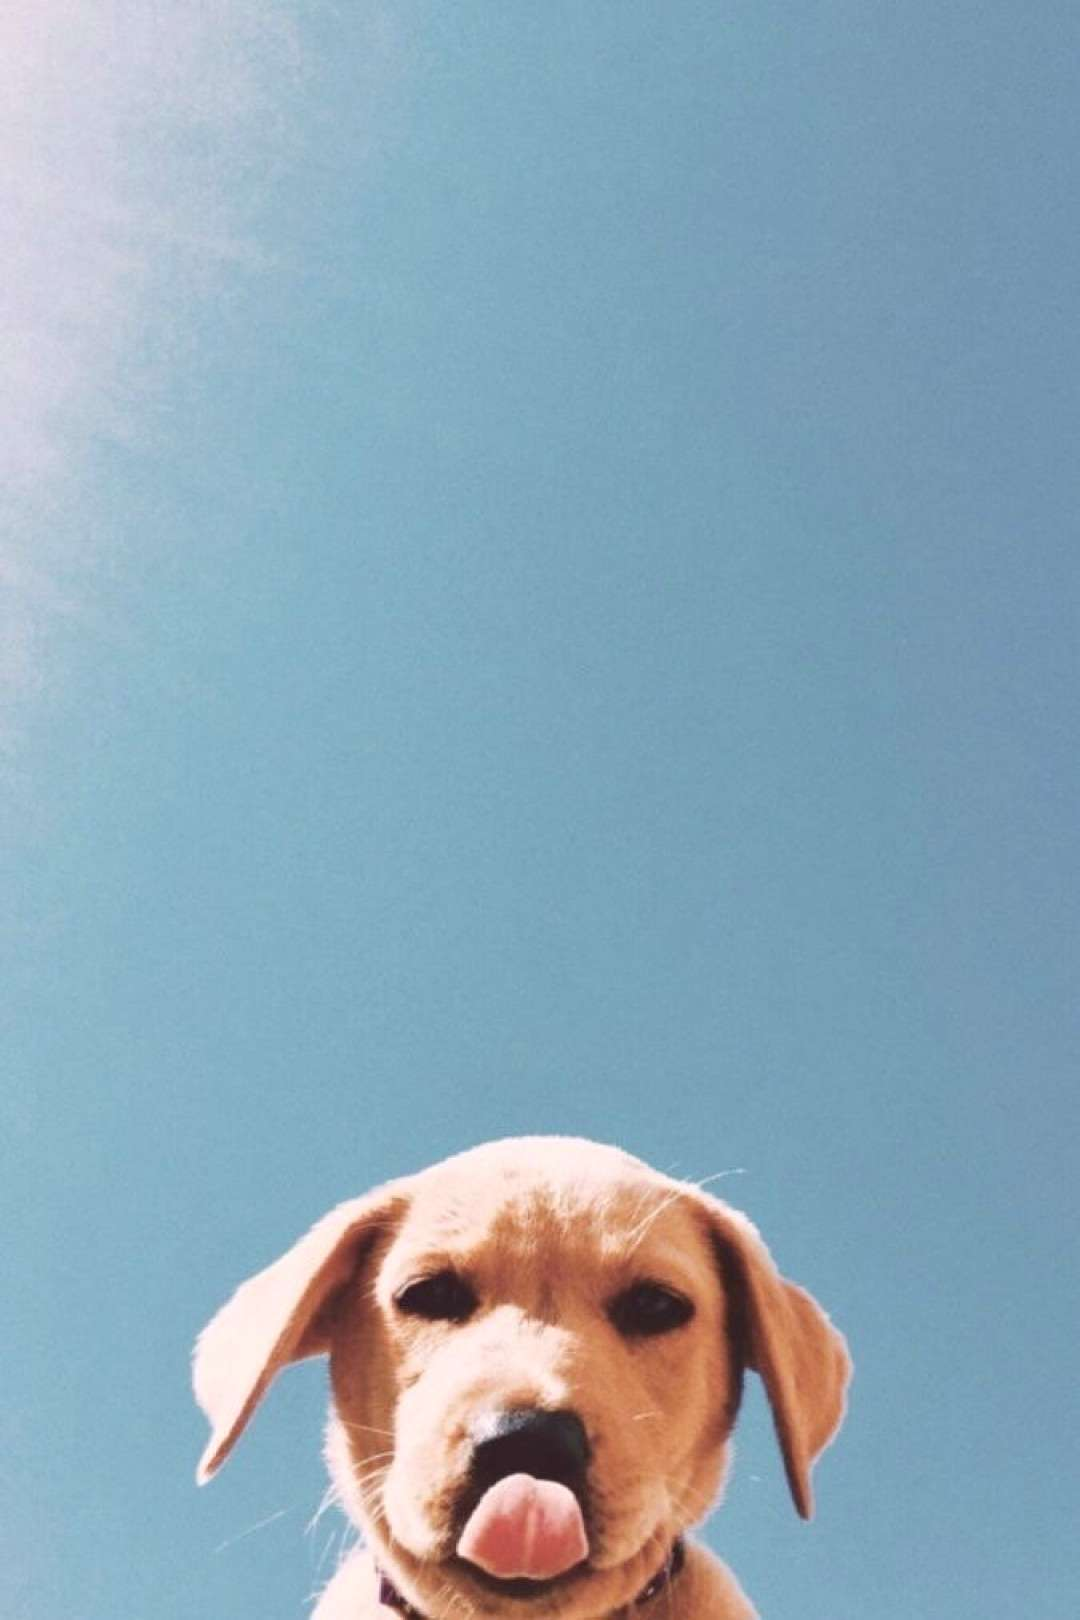 iPhone and Android Wallpapers: Cute Puppy Background for iPhone and Android